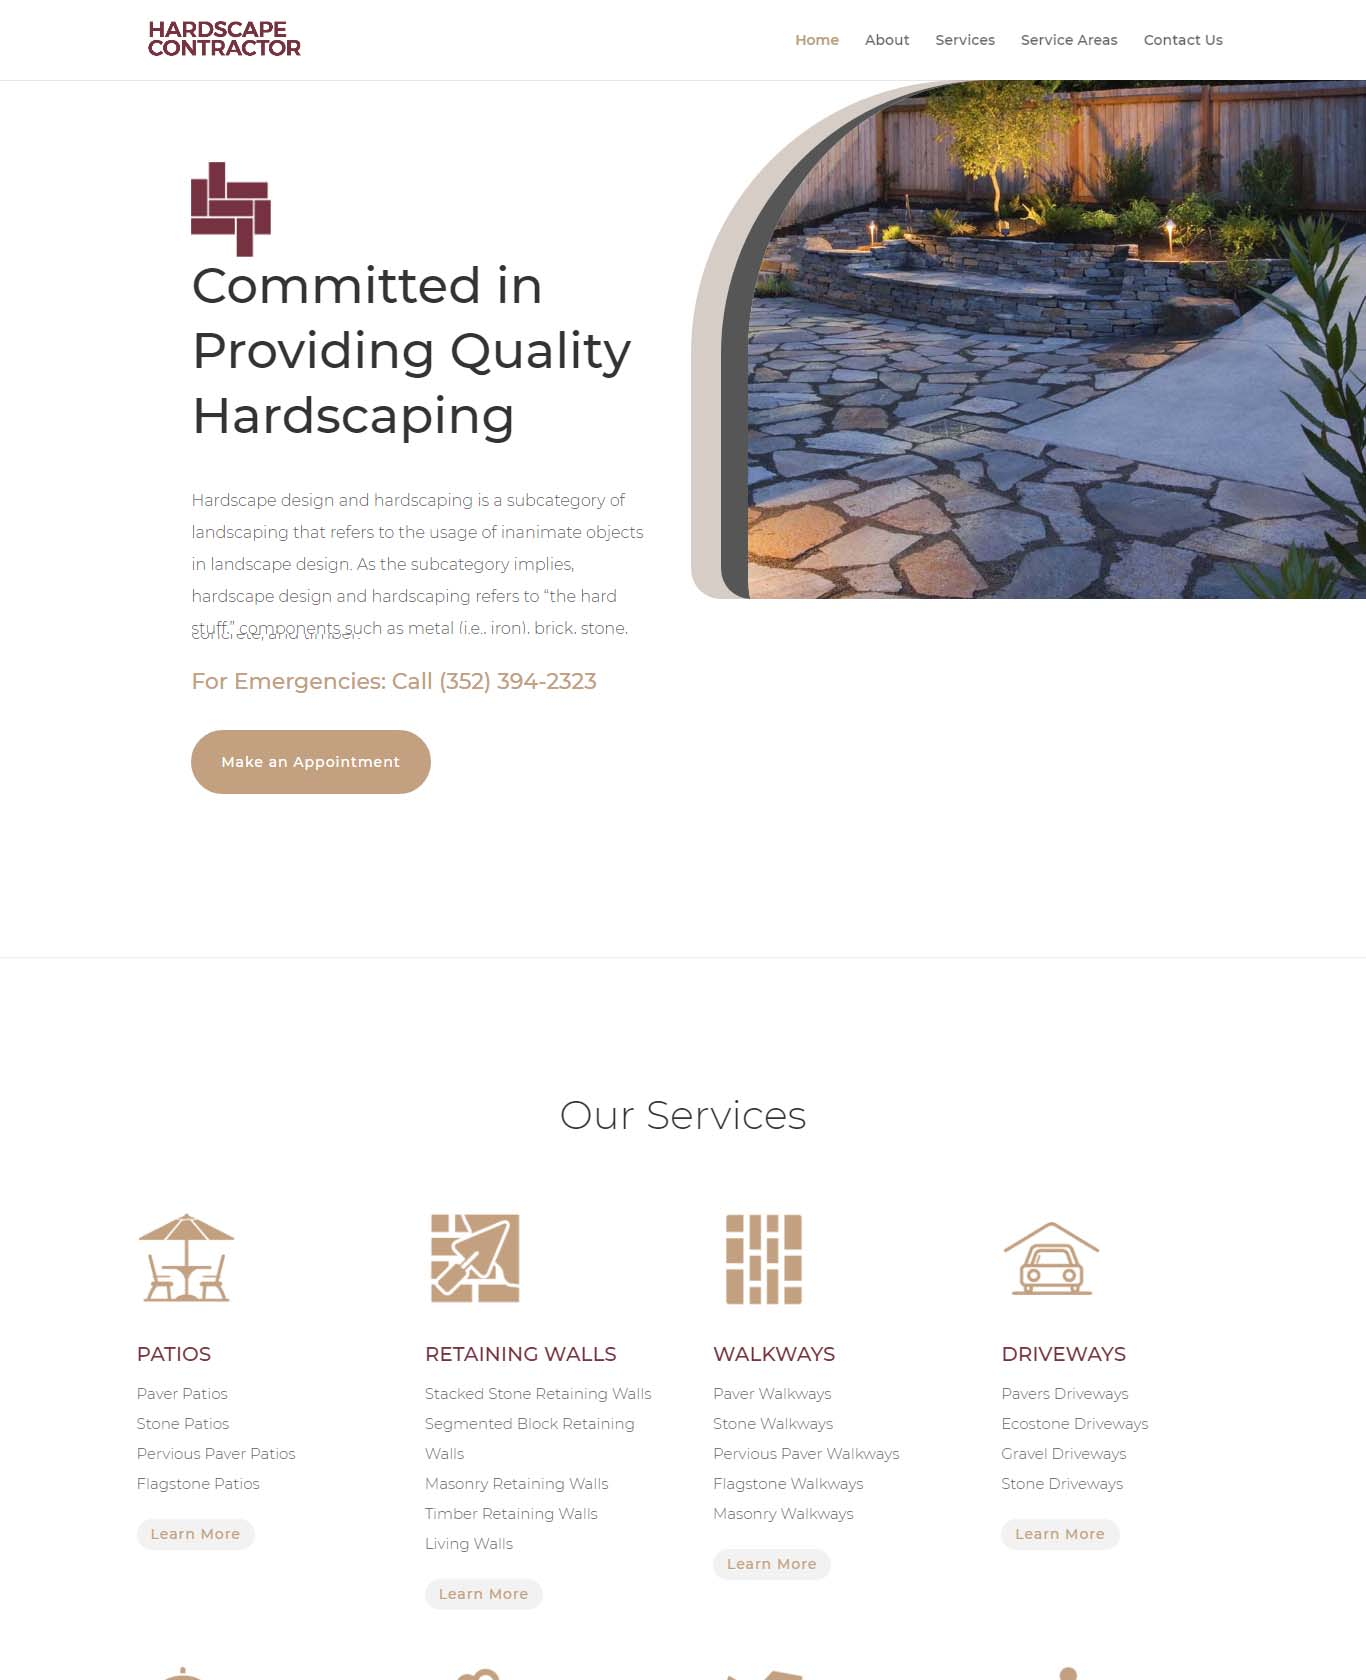 Commited in Providing Quality Hardscaping Website Sample